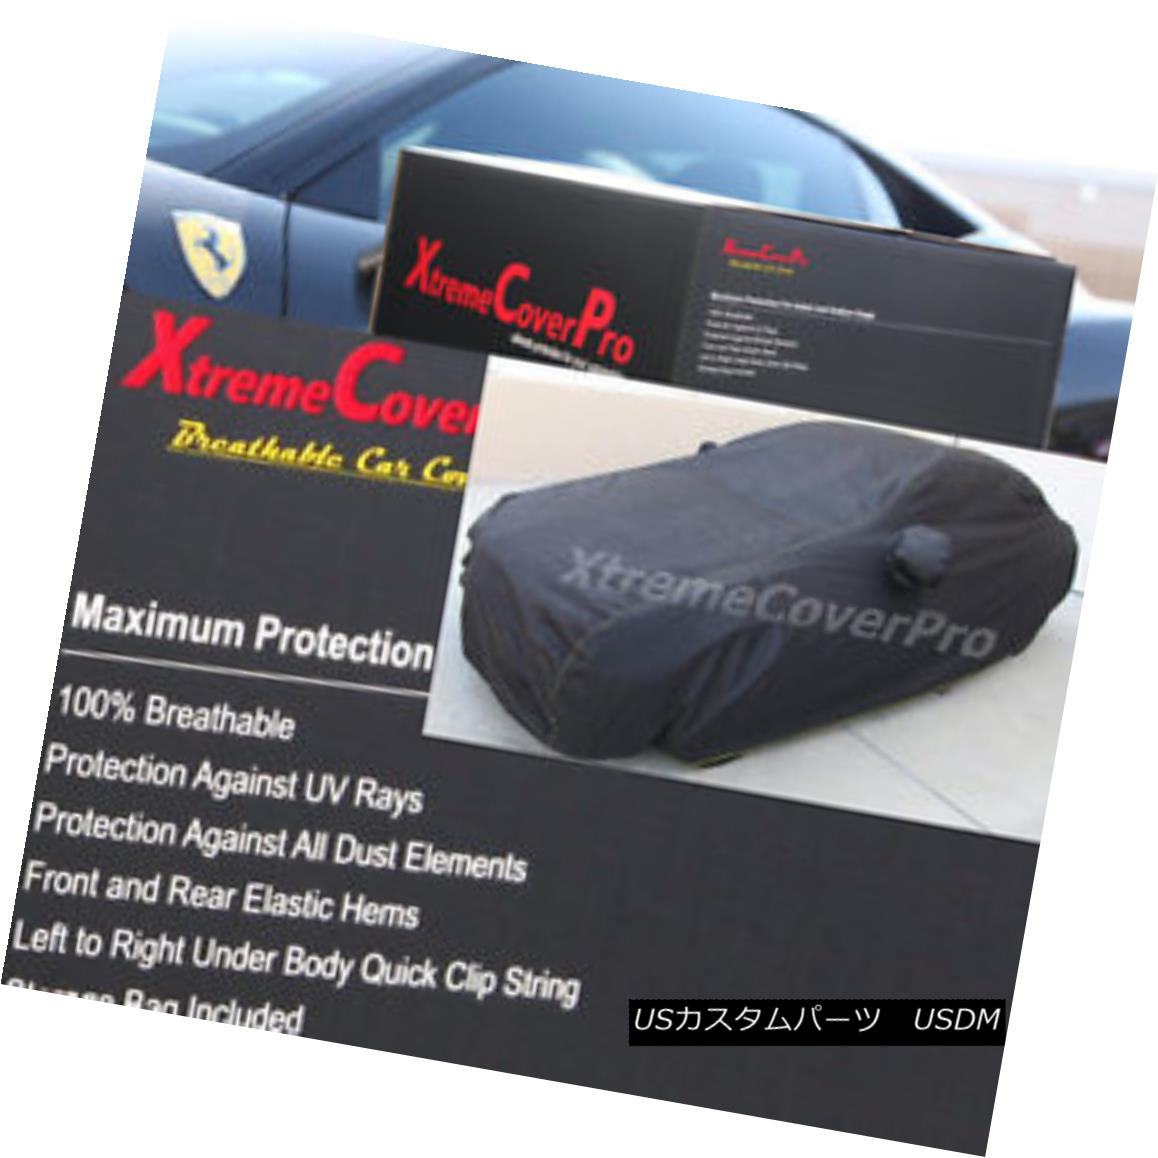 カーカバー 2013 Mercedes E350 E550 Coupe Breathable Car Cover w/MirrorPocket 2013年メルセデスE350 E550クーペ通気性車カバー付きMirrorPocket